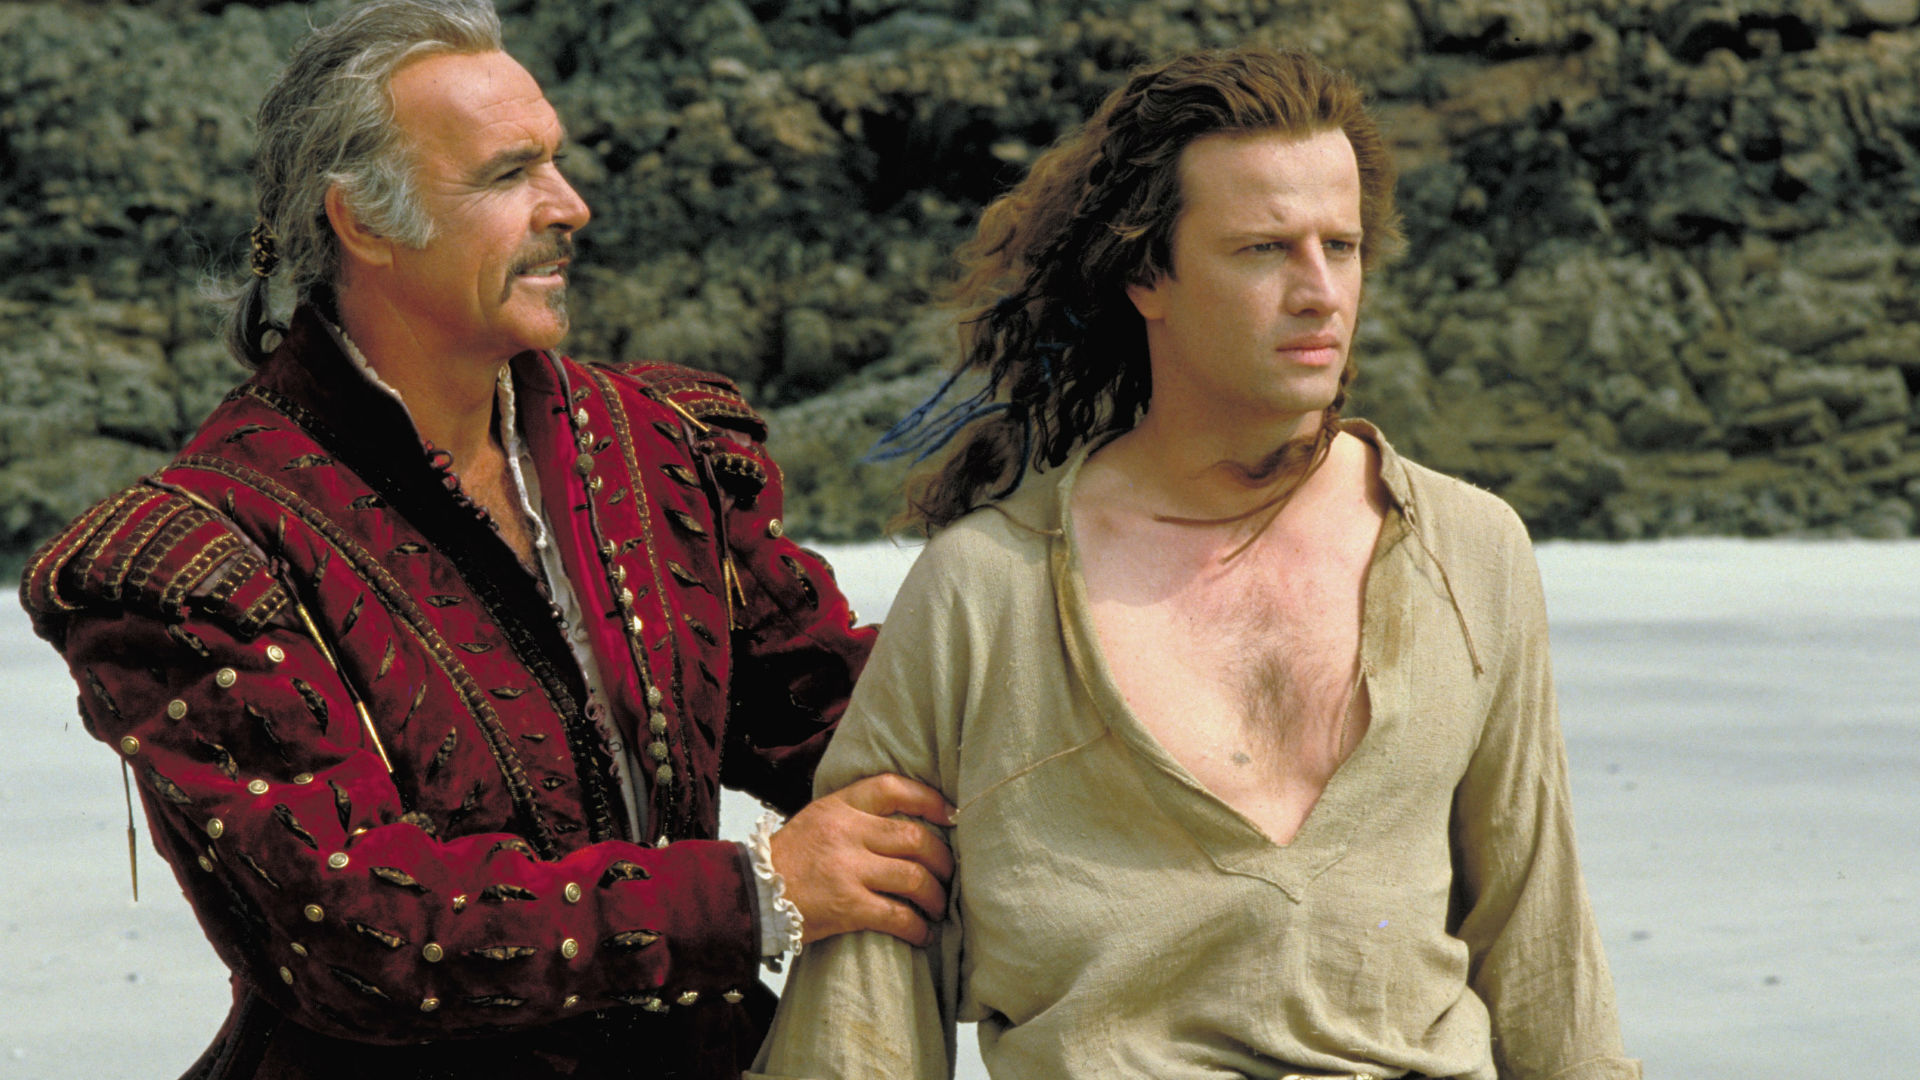 Christopher Lambert and Sean Connery in Highlander